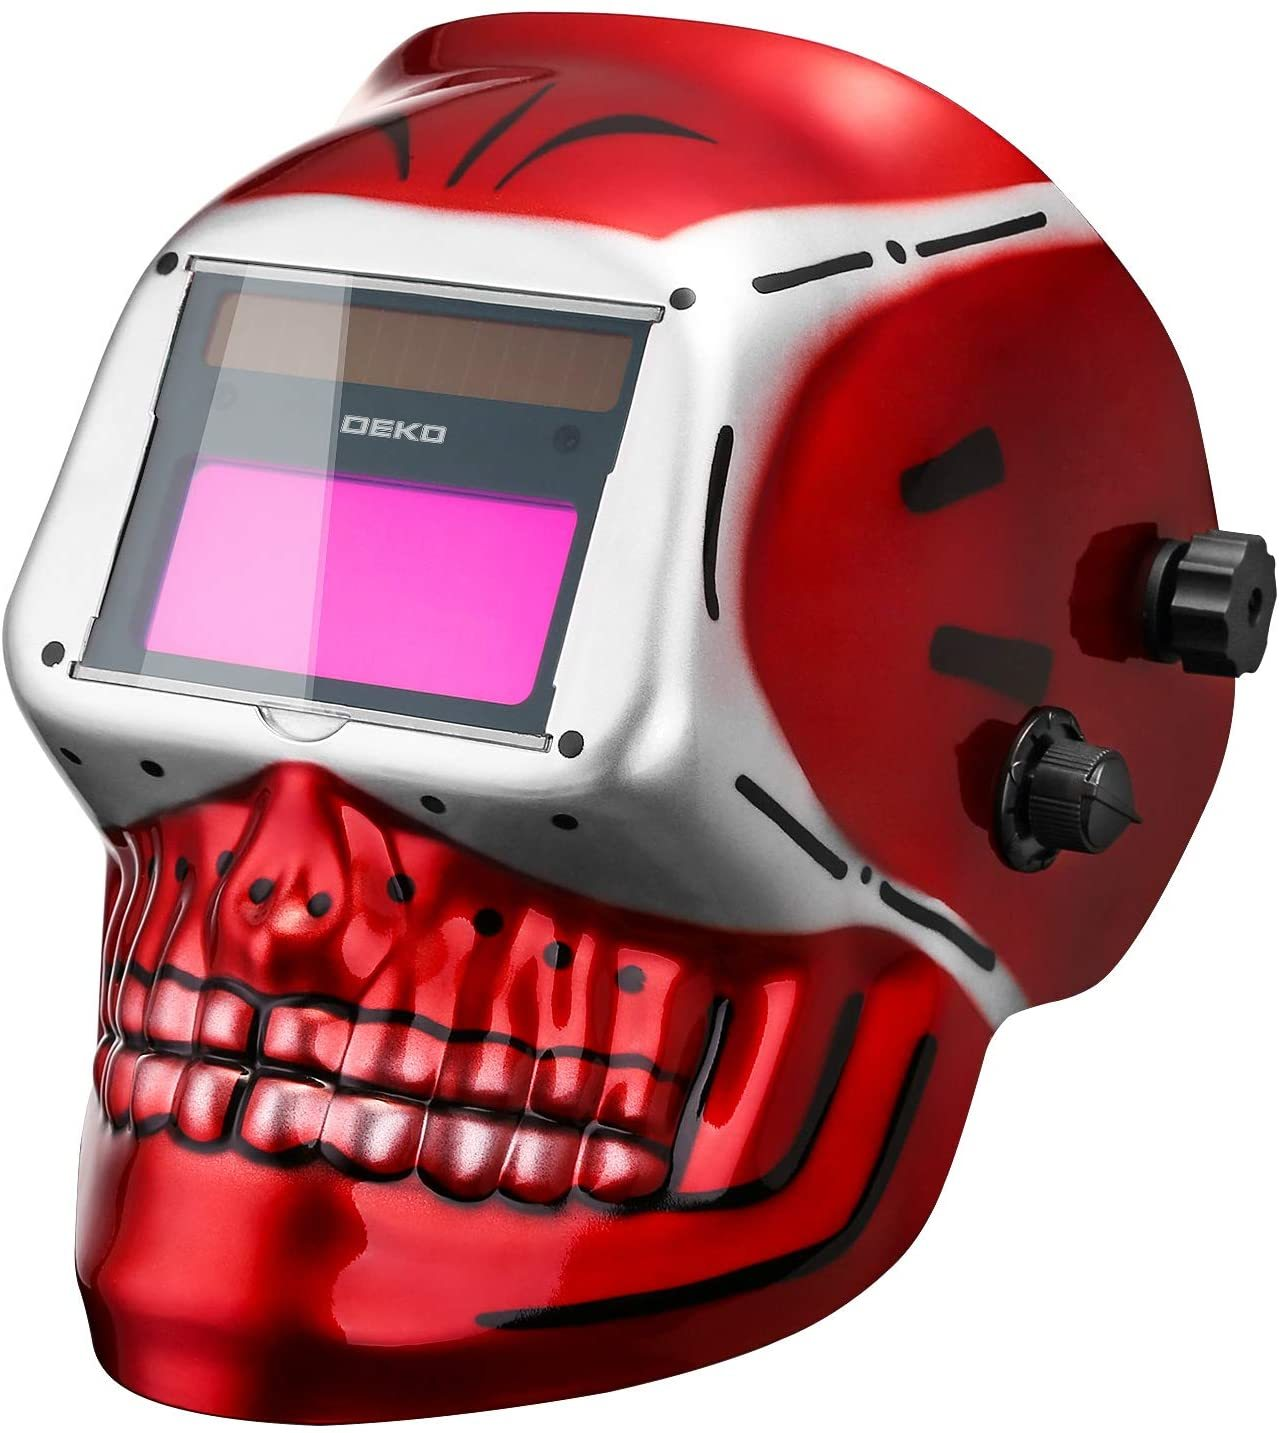 DEKOPRO Welding Helmet with Adjustable Shade